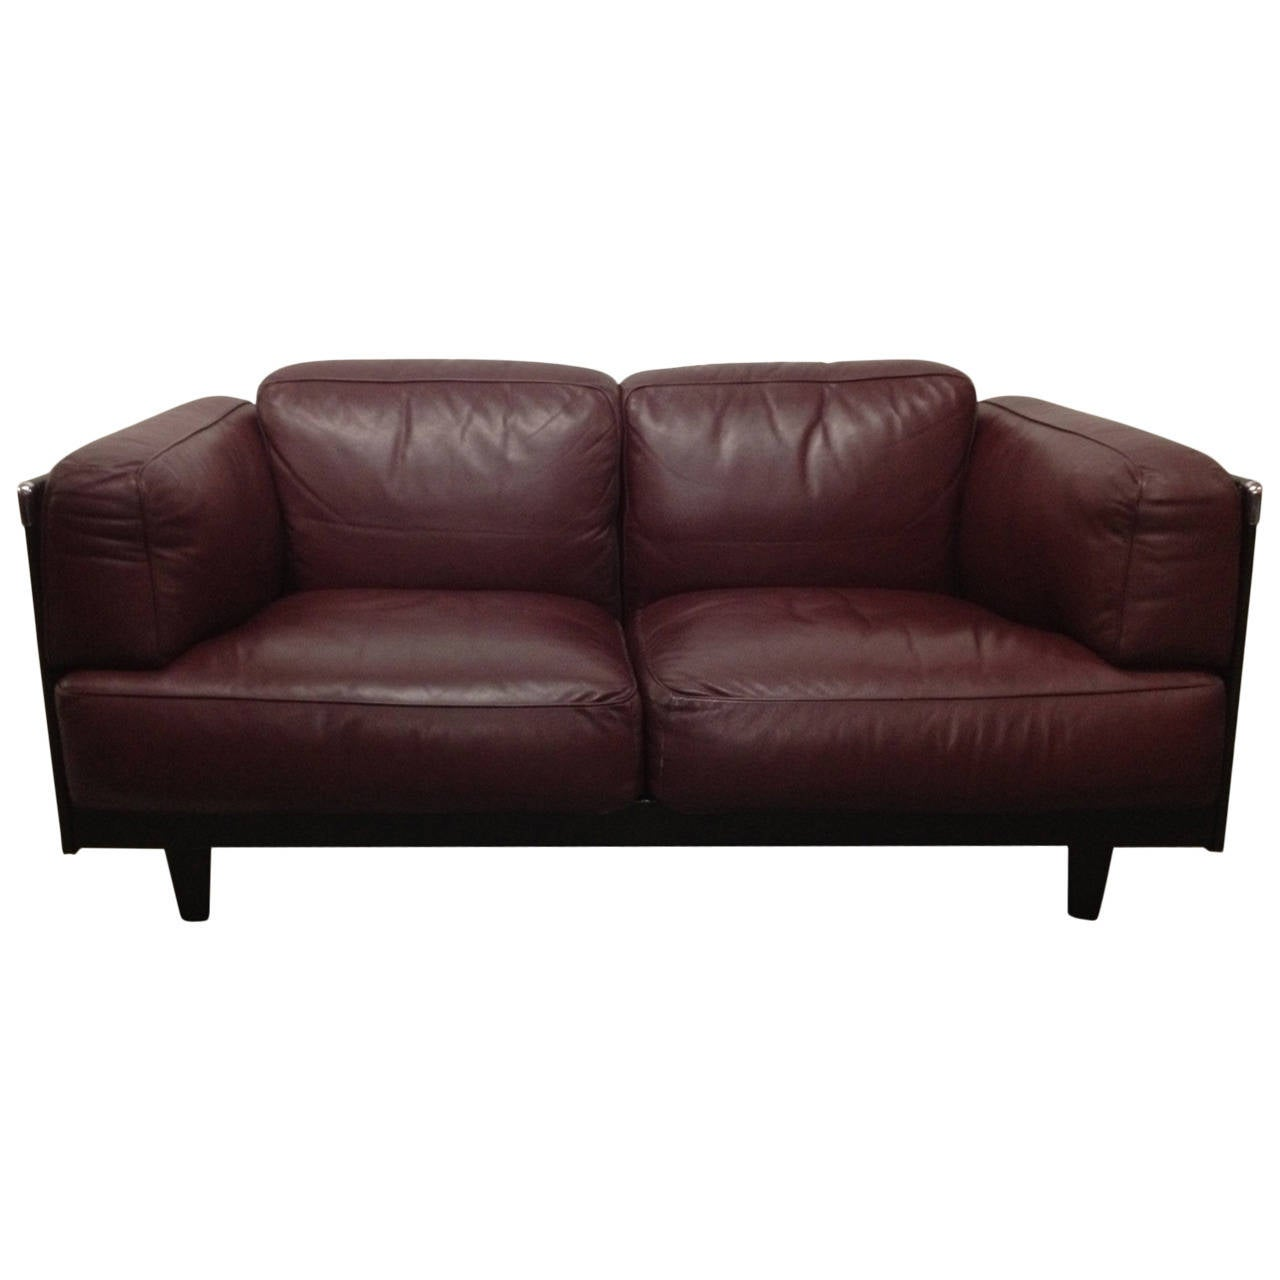 Leather sofa by poltrona frau for sale at 1stdibs for Leather sofas for sale